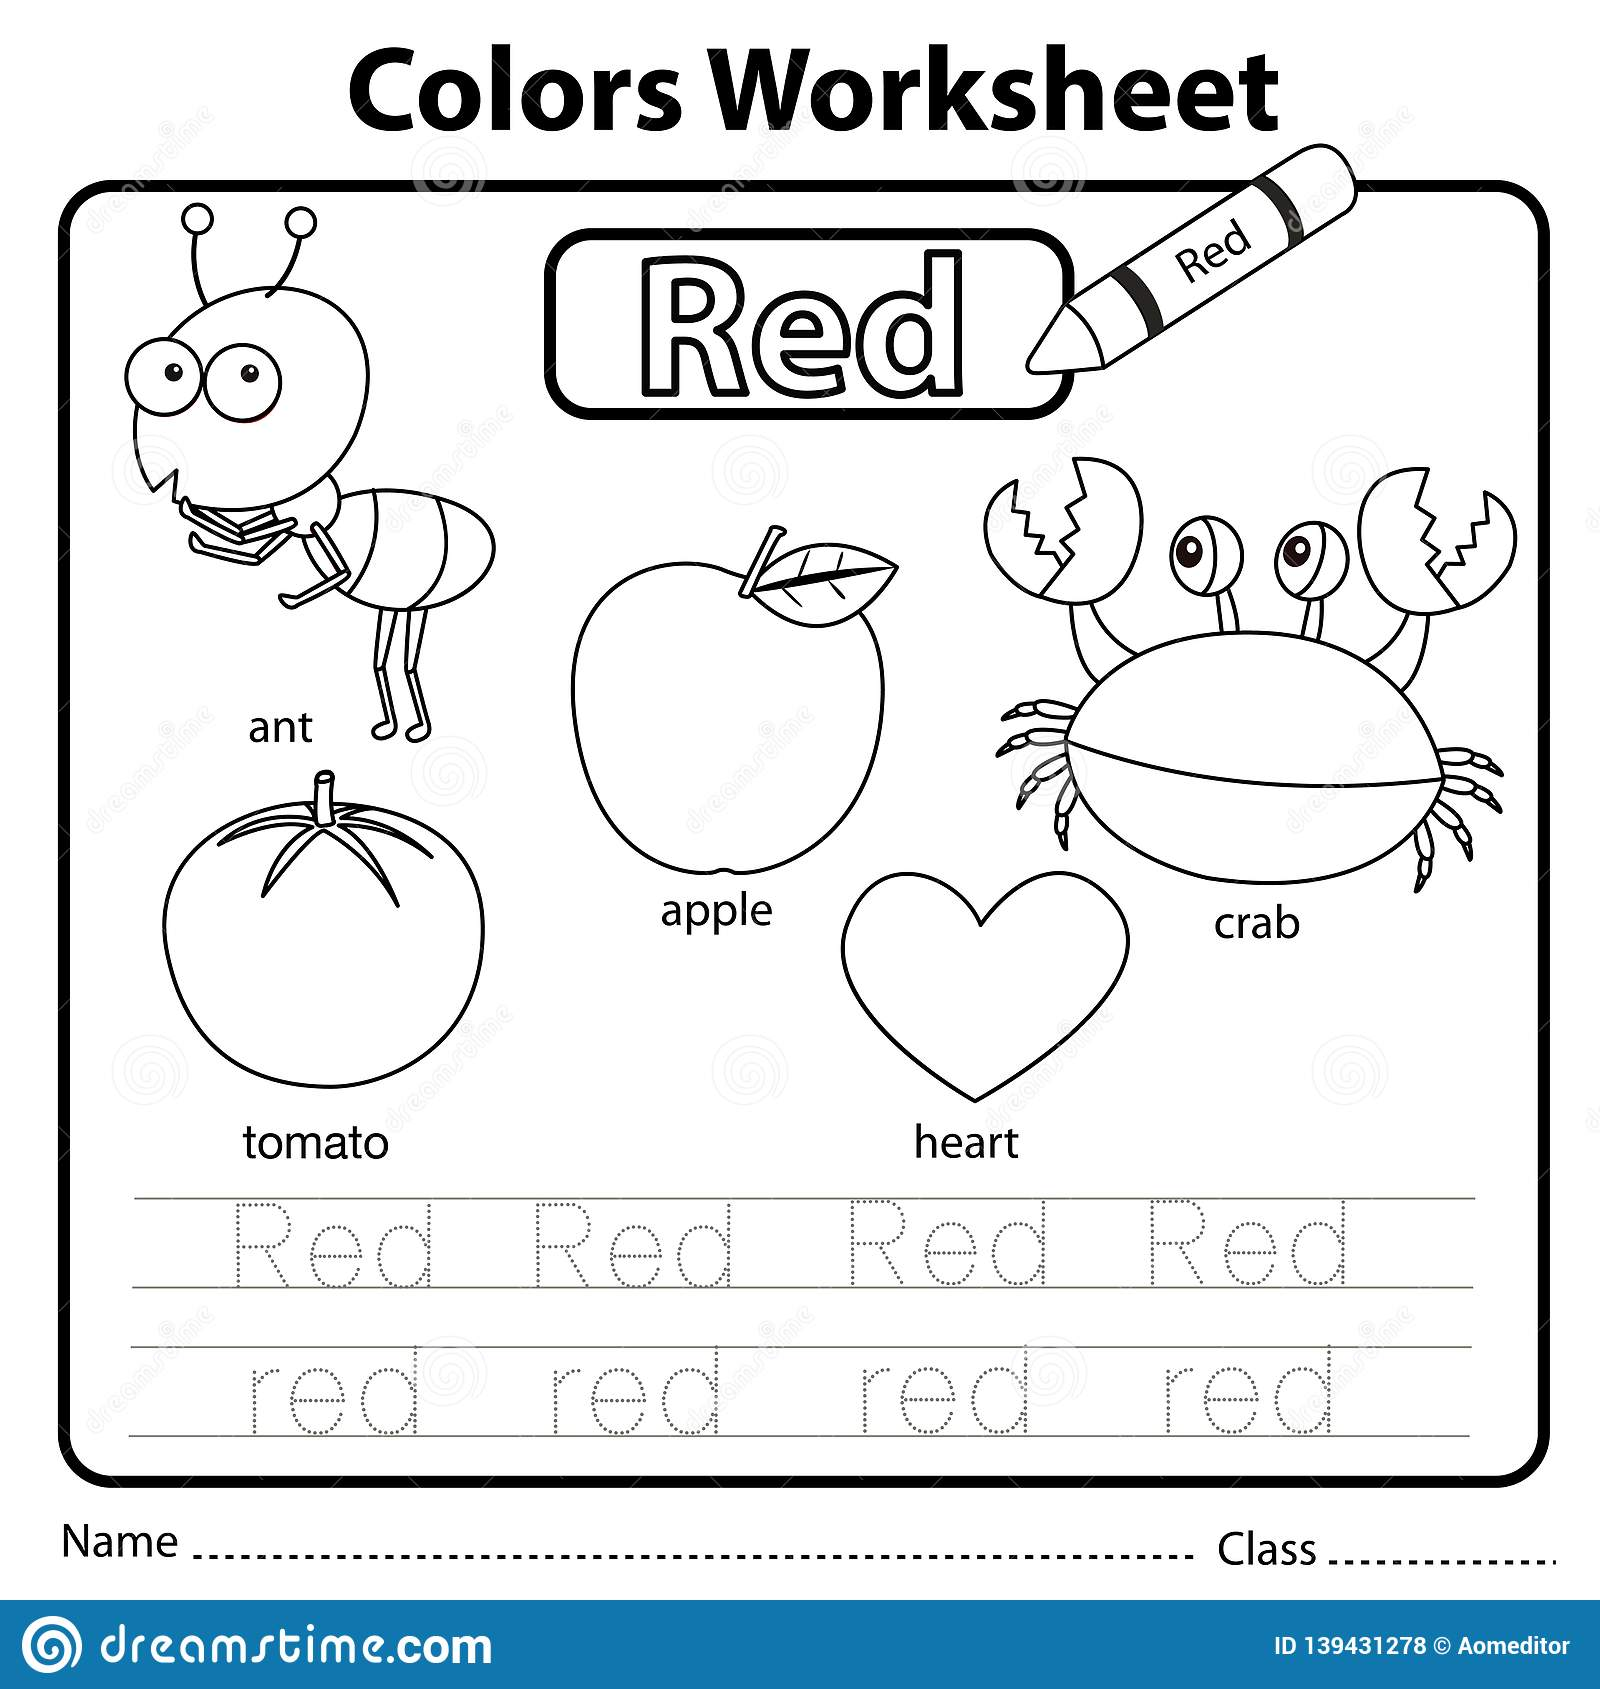 Illustrator Of Color Worksheet Red Stock Vector